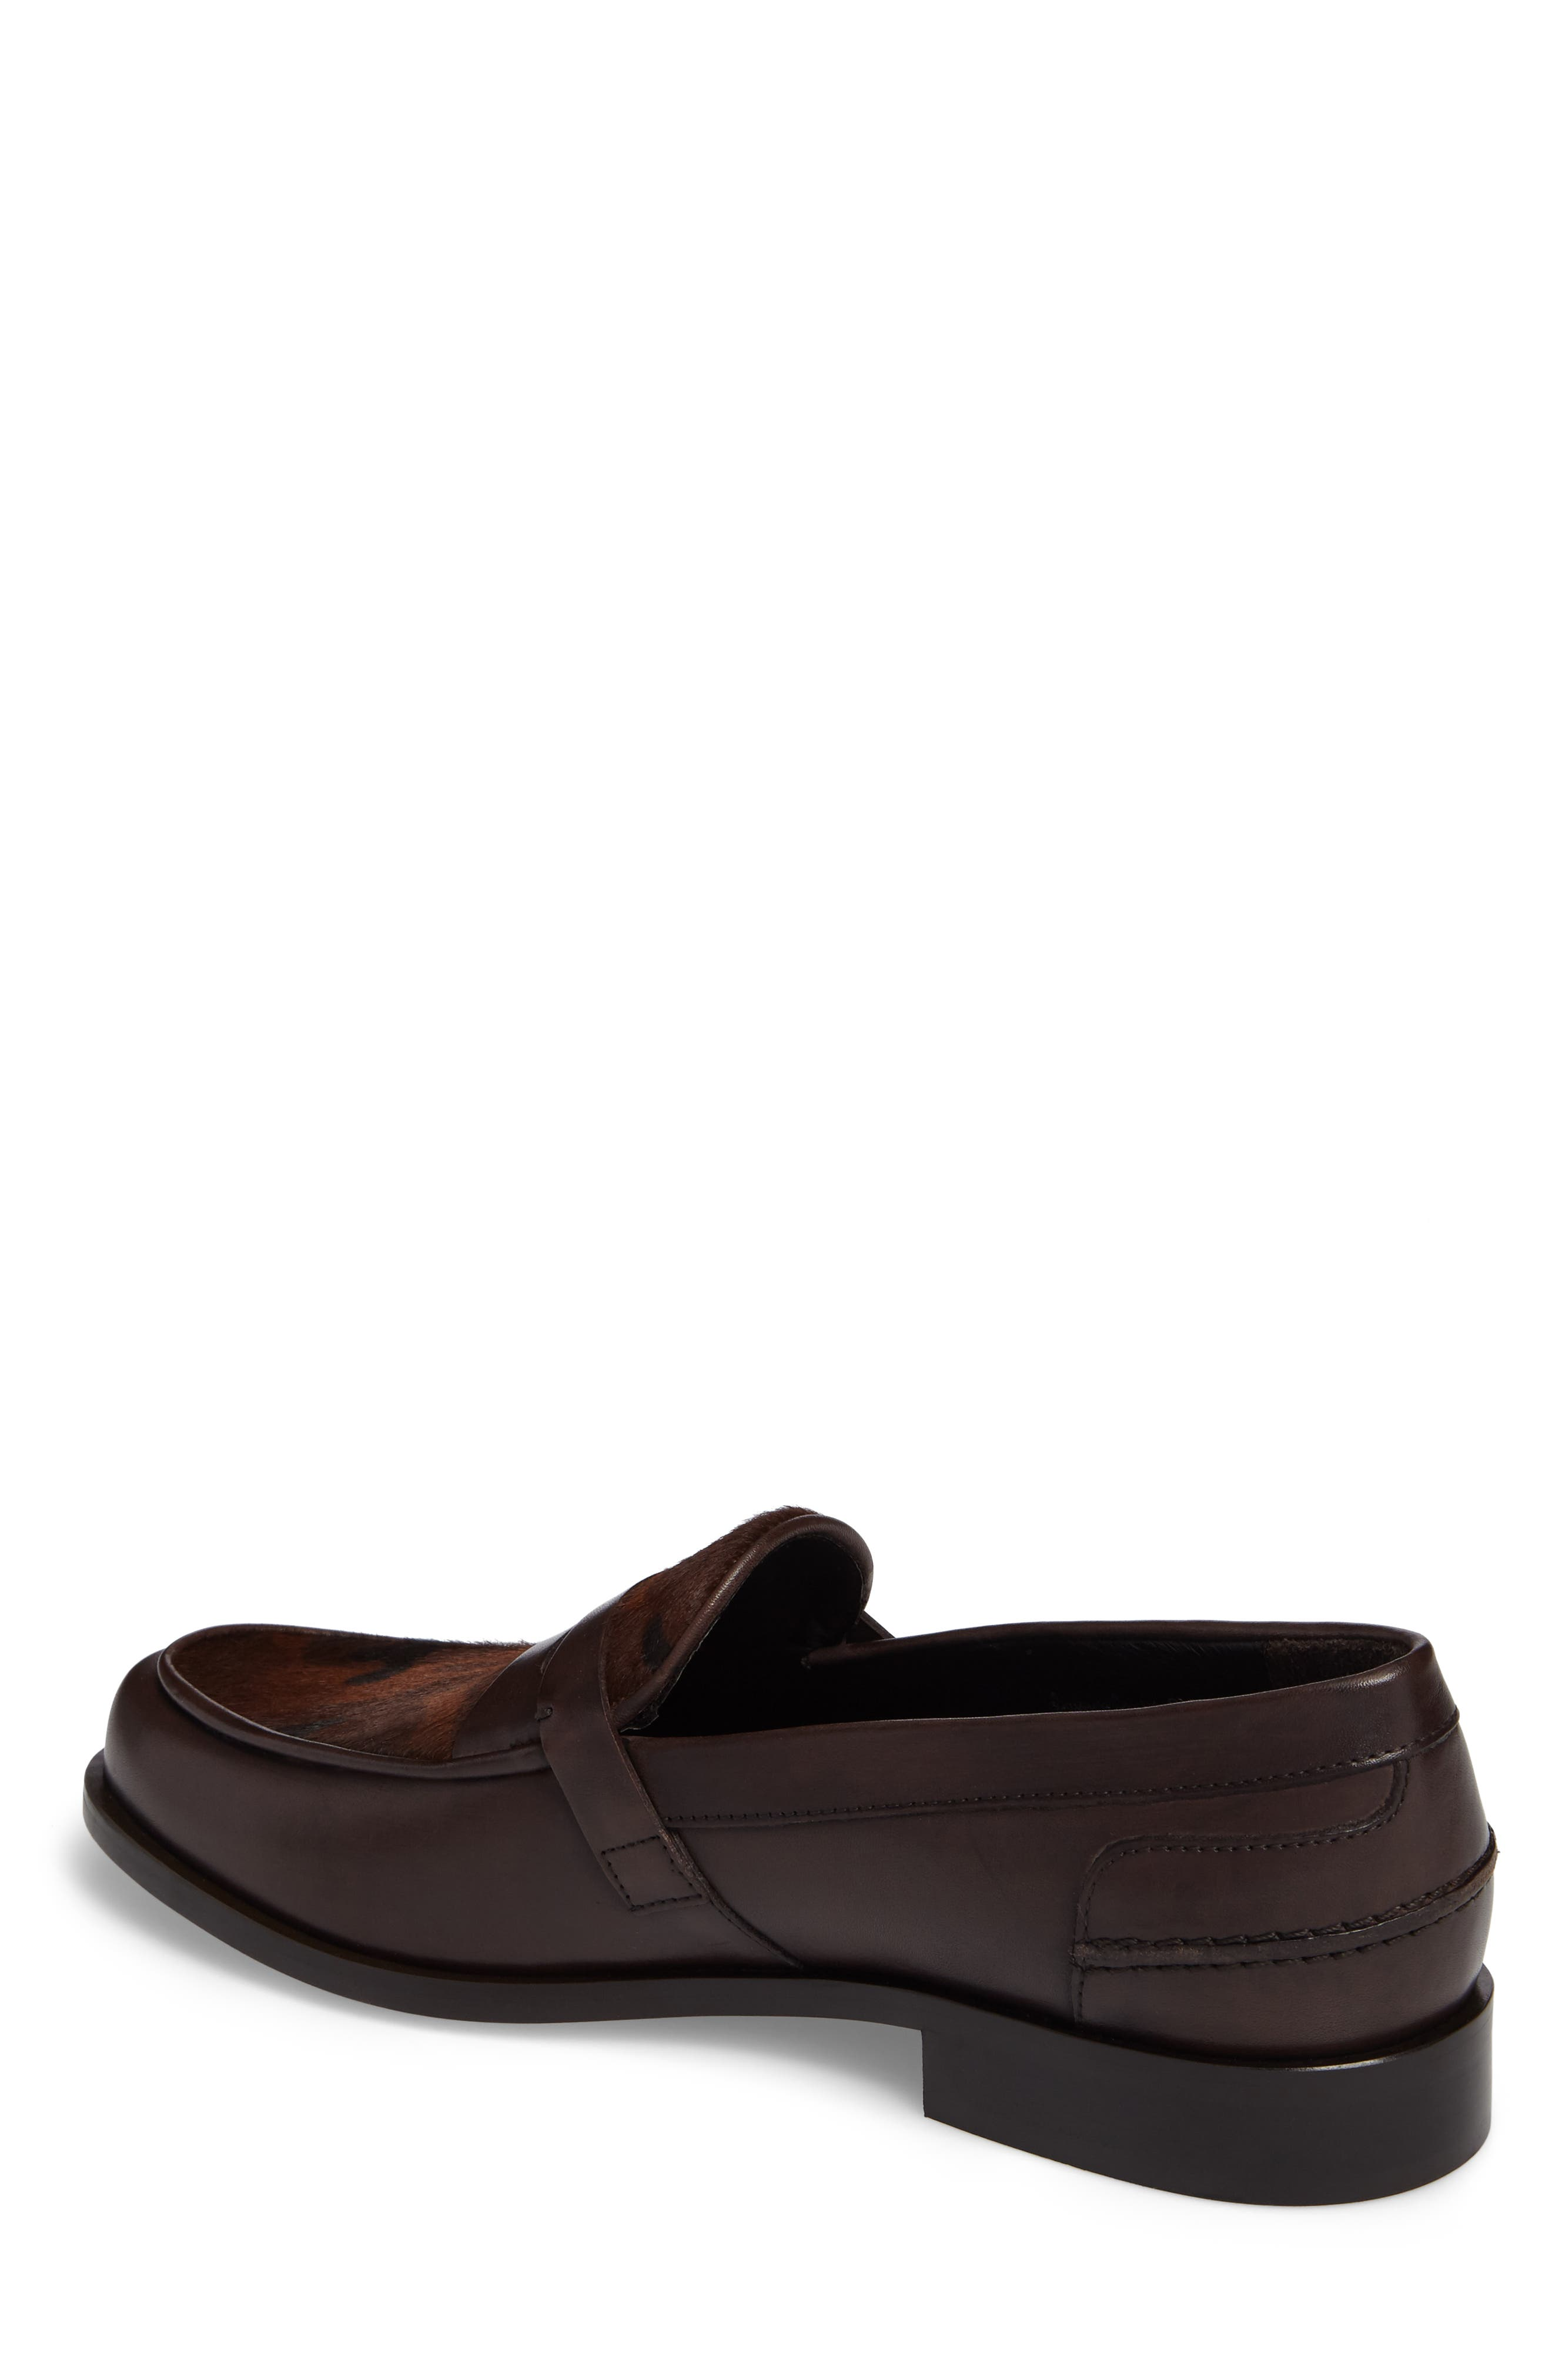 Alternate Image 2  - Donald J Pliner Sawyer Penny Loafer (Men)